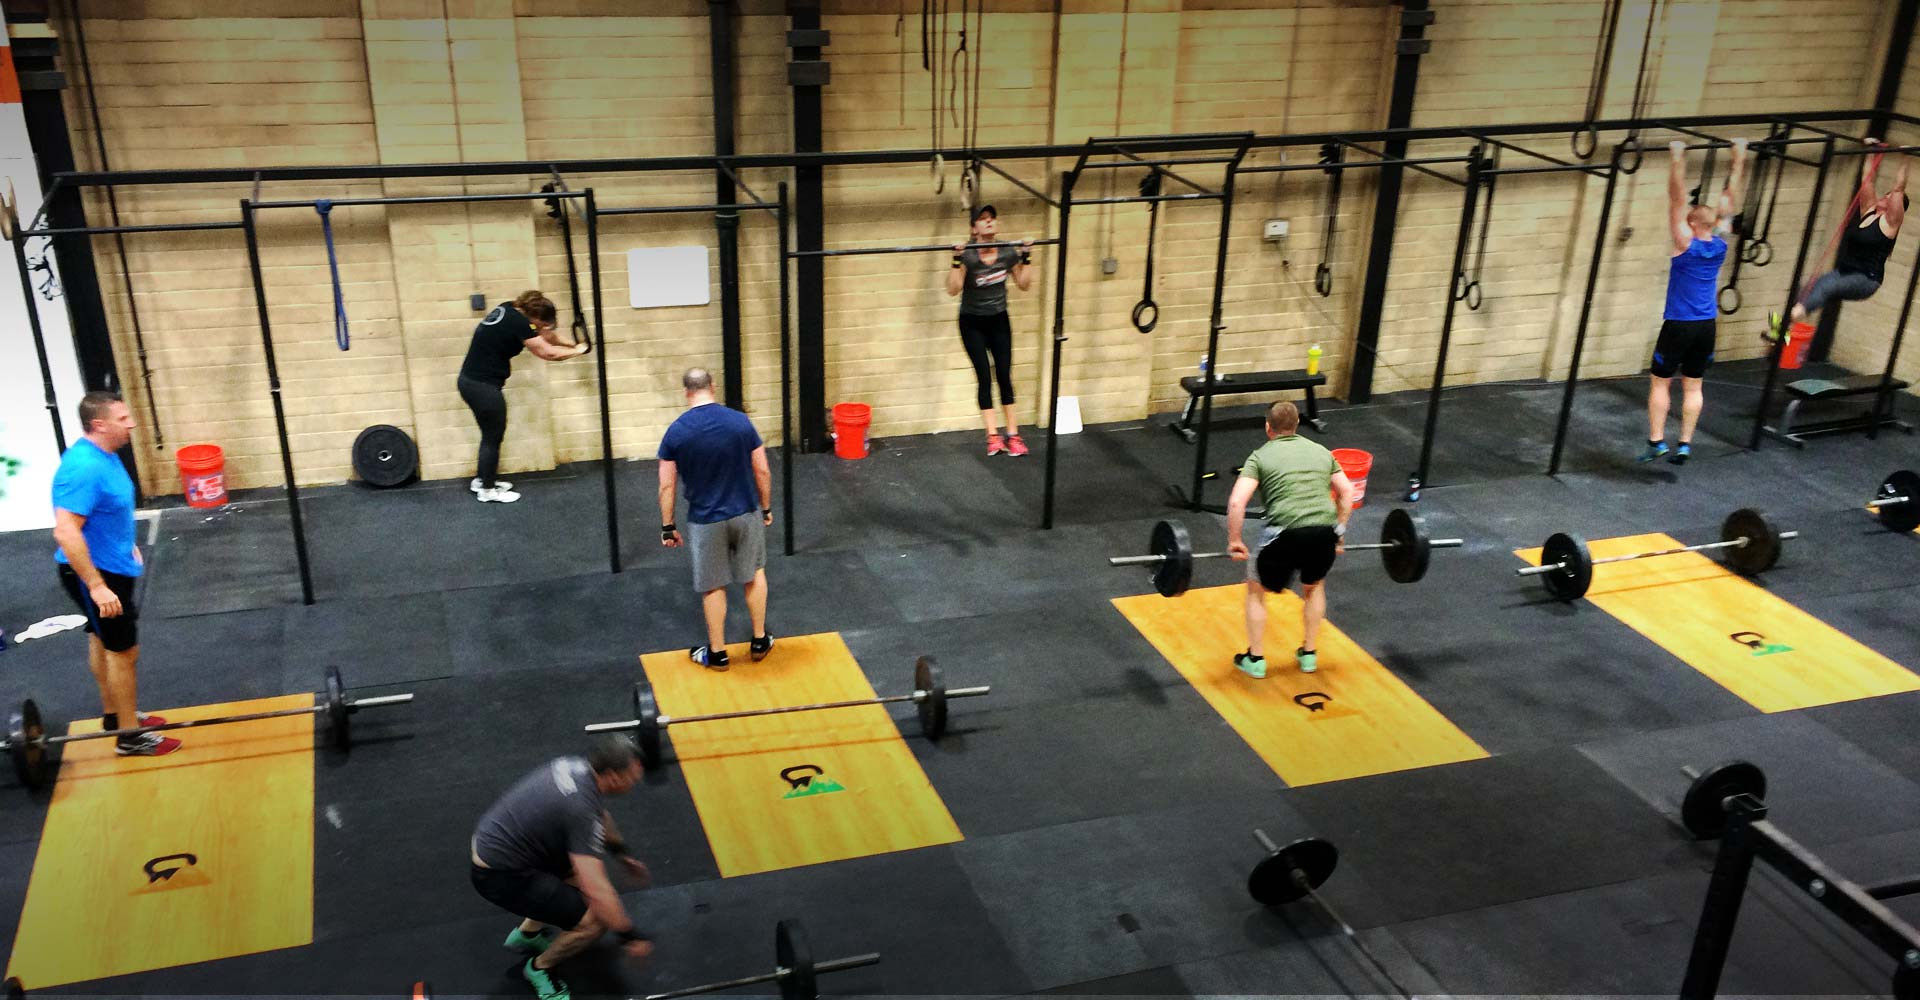 About <br>White Mountain Crossfit